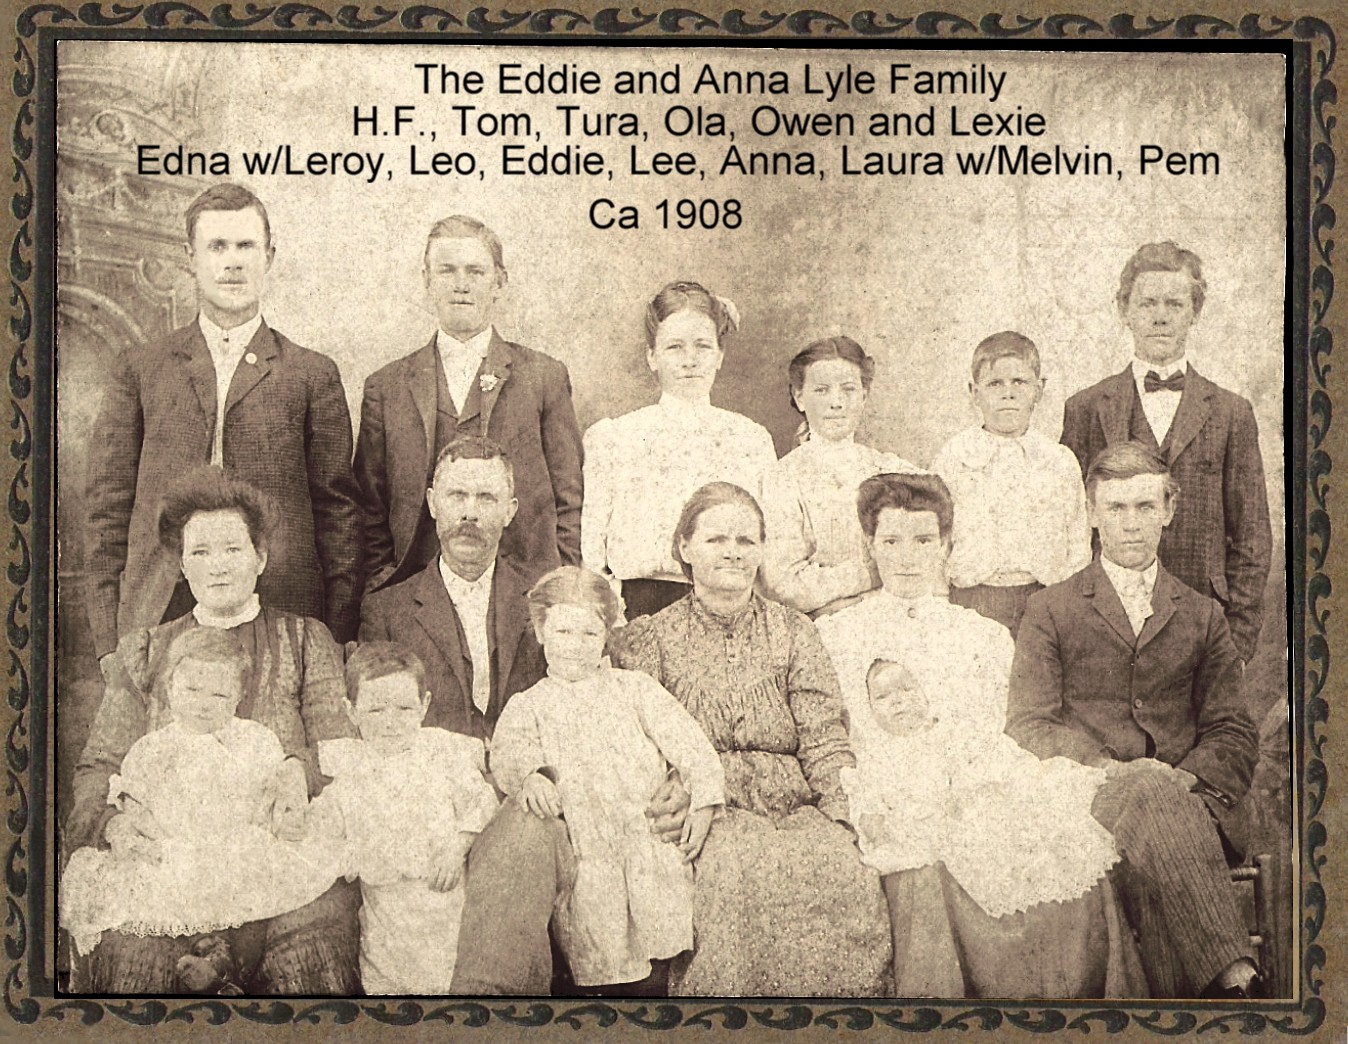 My Great-Great Grandparents, Edward Wesley Lyle and Anna Levisa GRANTLAND Lyle (ca1908--The man and woman to far left are my great grandparents, Harry Floyd Lyle and Dora Edna BREEDING Lyle).....